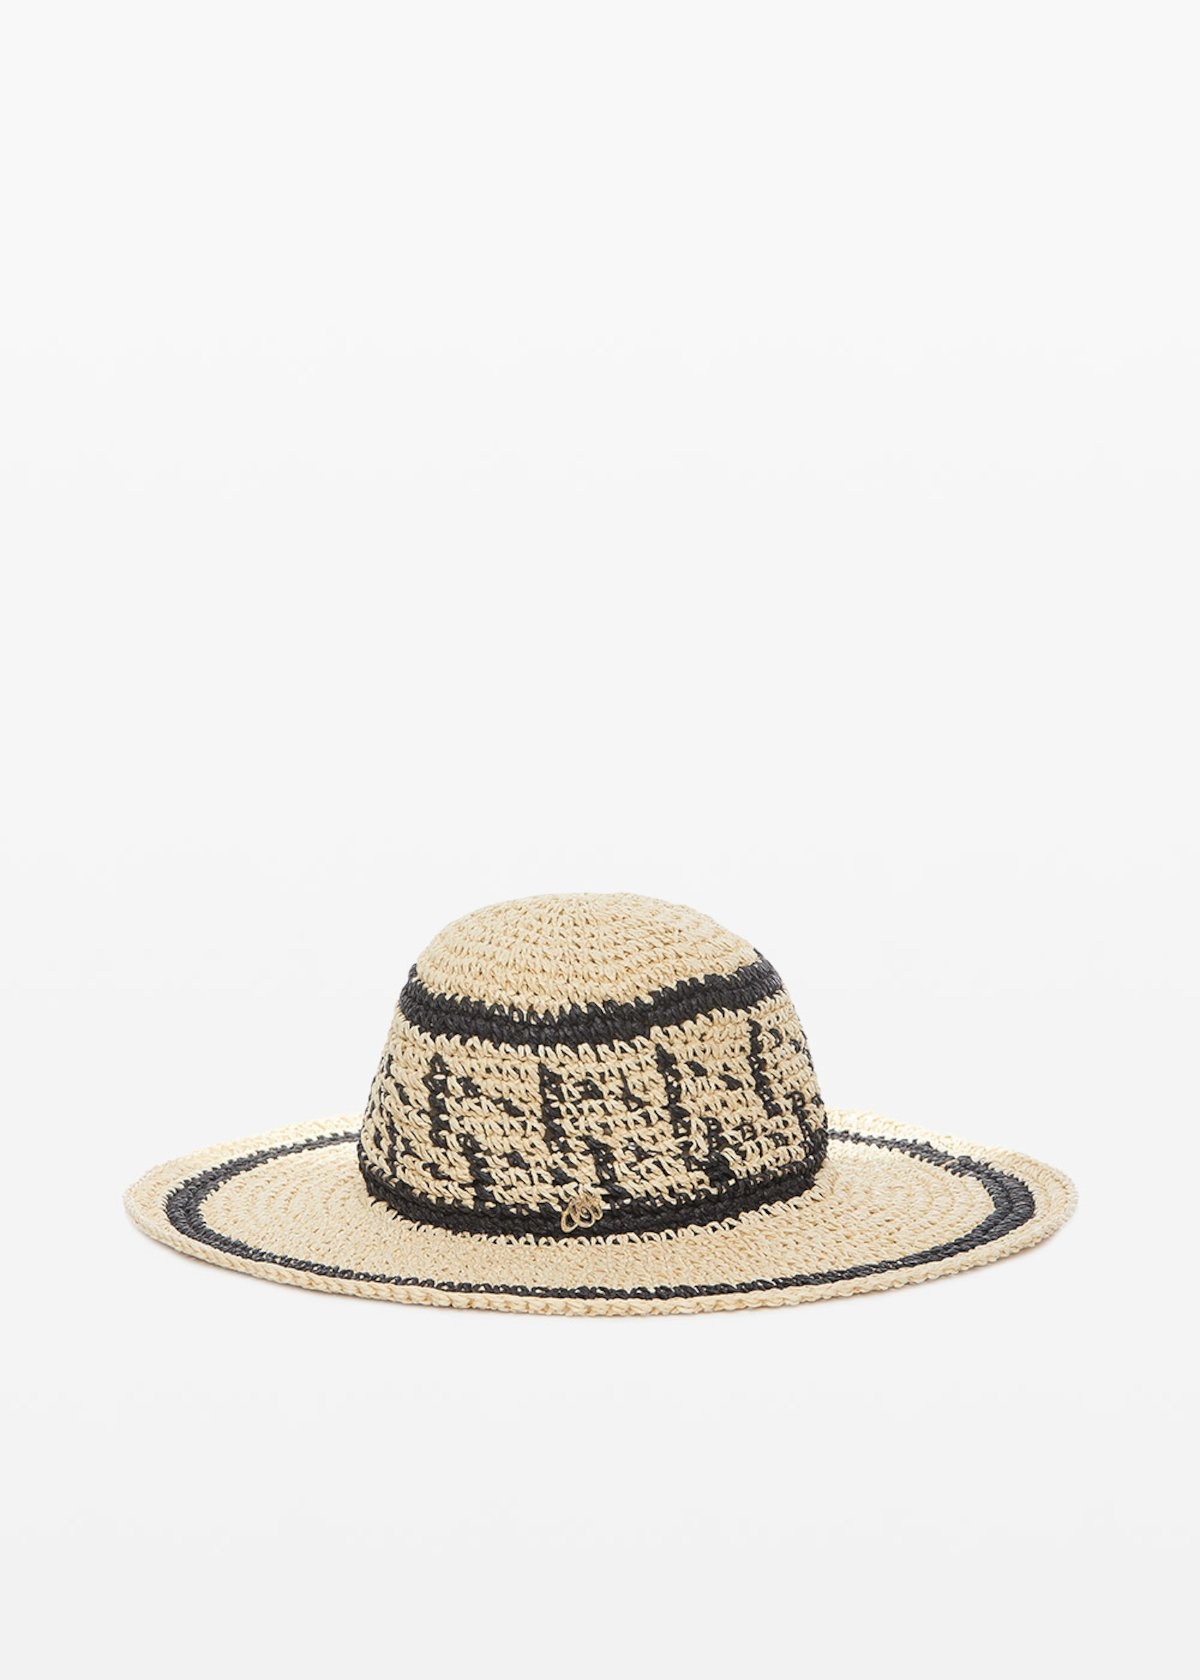 Crissy straw hat with contrasting decorations